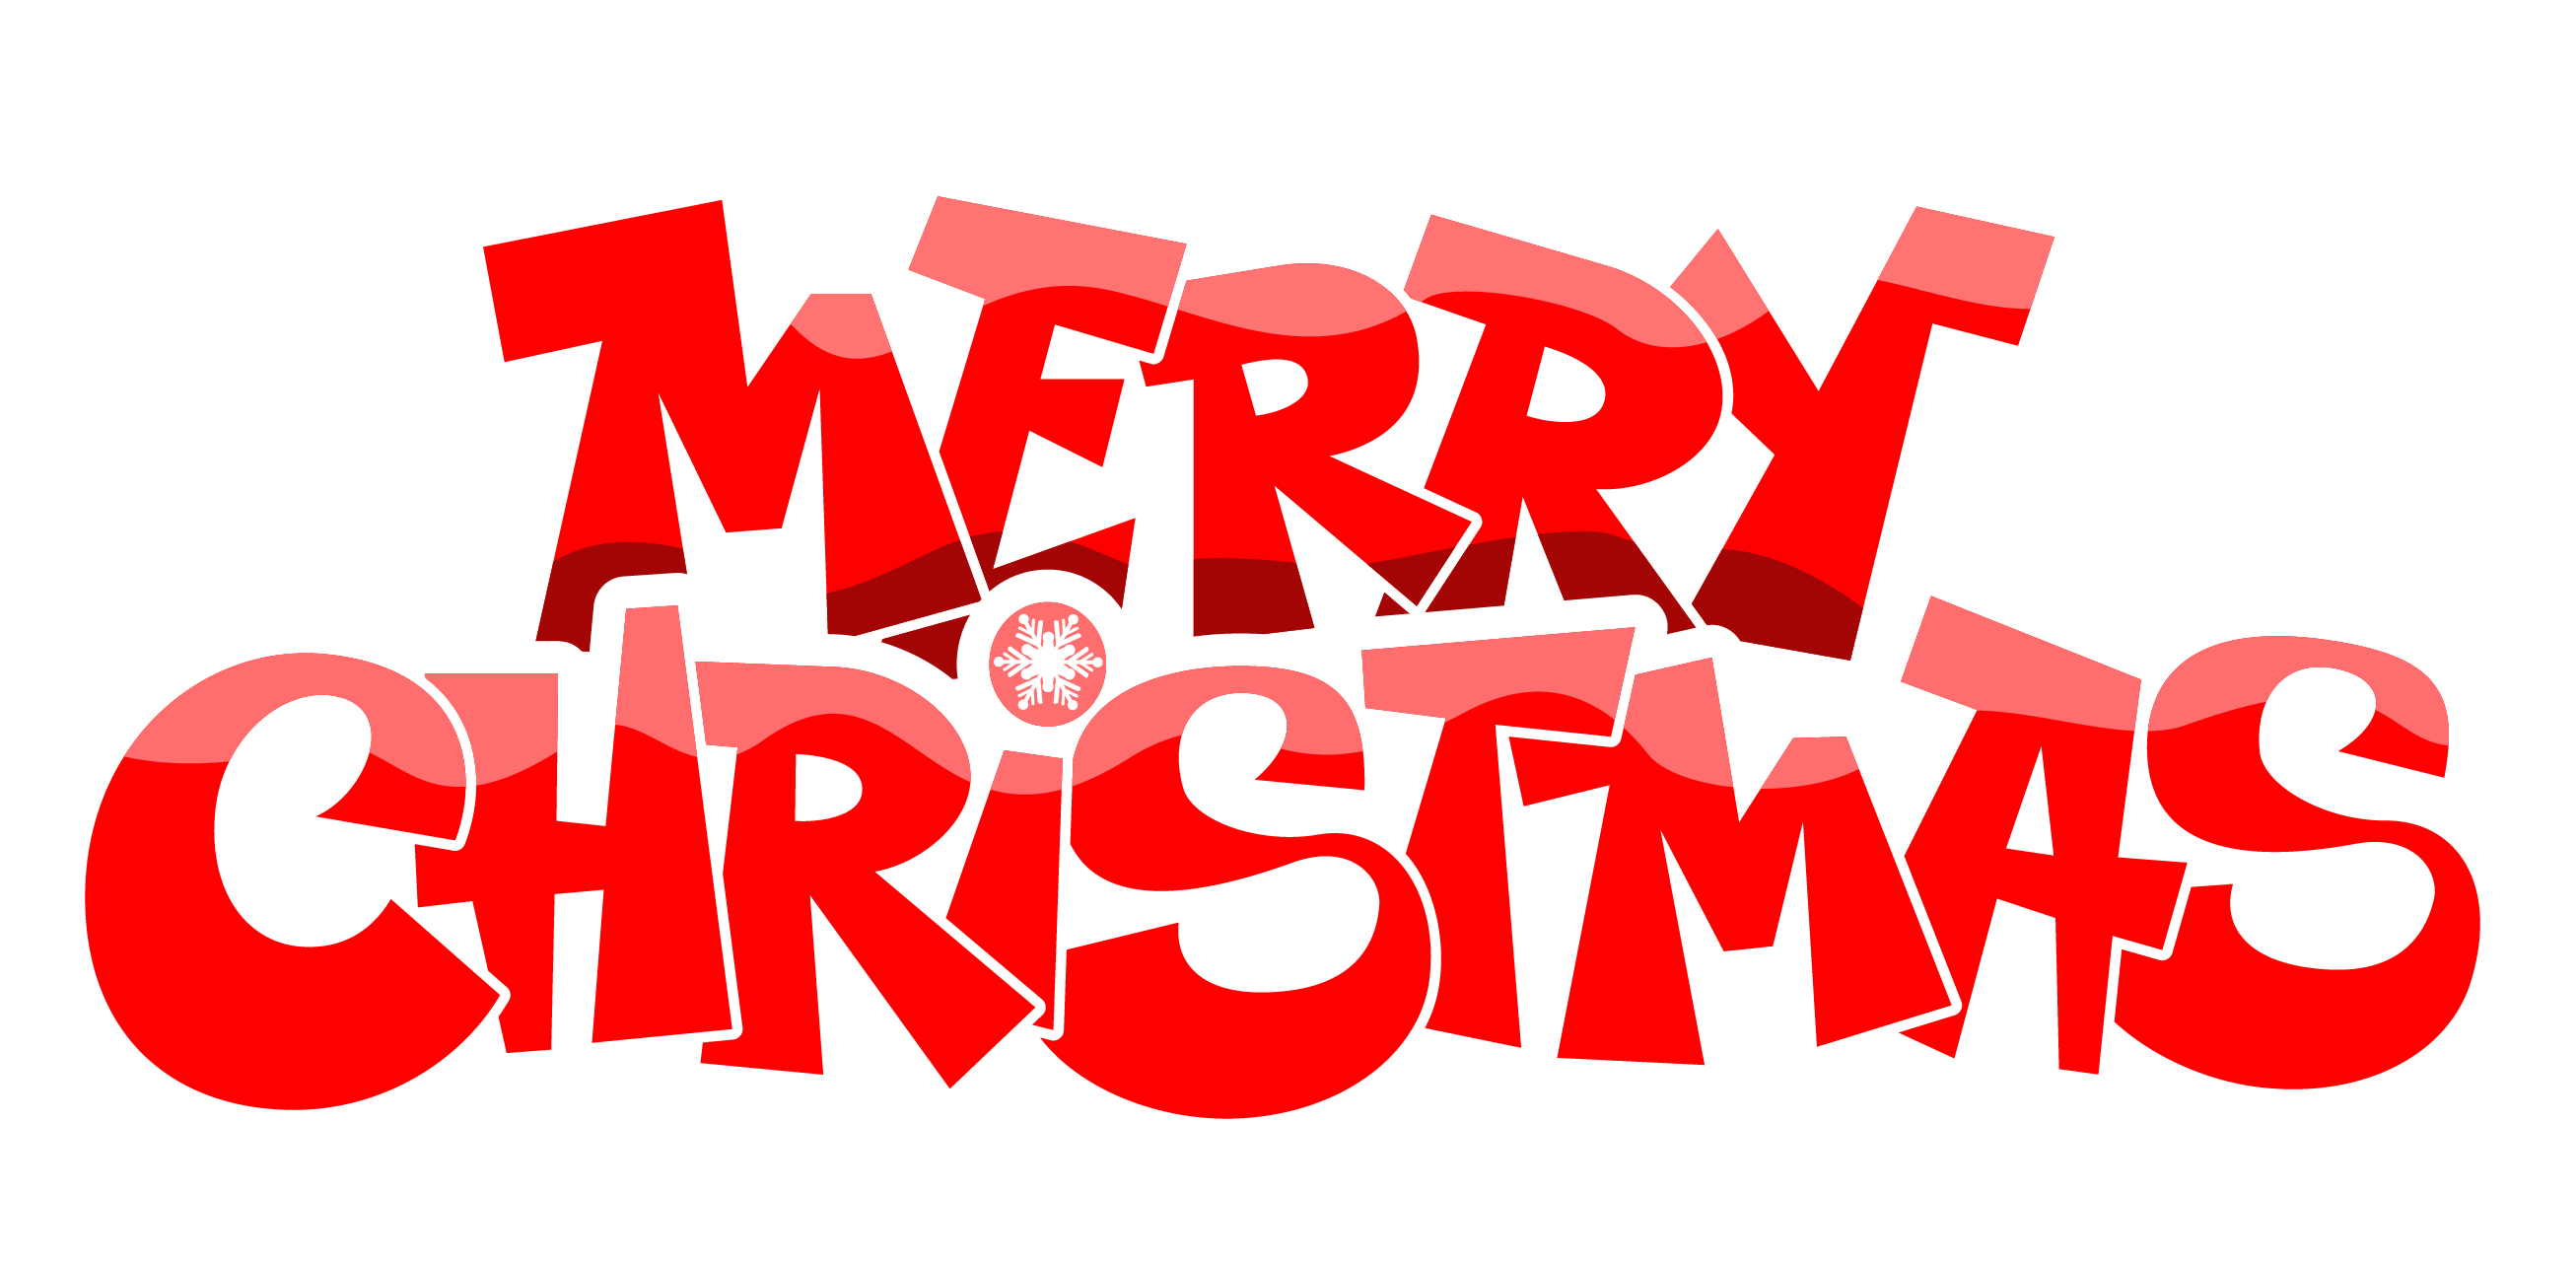 Merry Christmas And Happy New Year Clipart - Cliparts.co